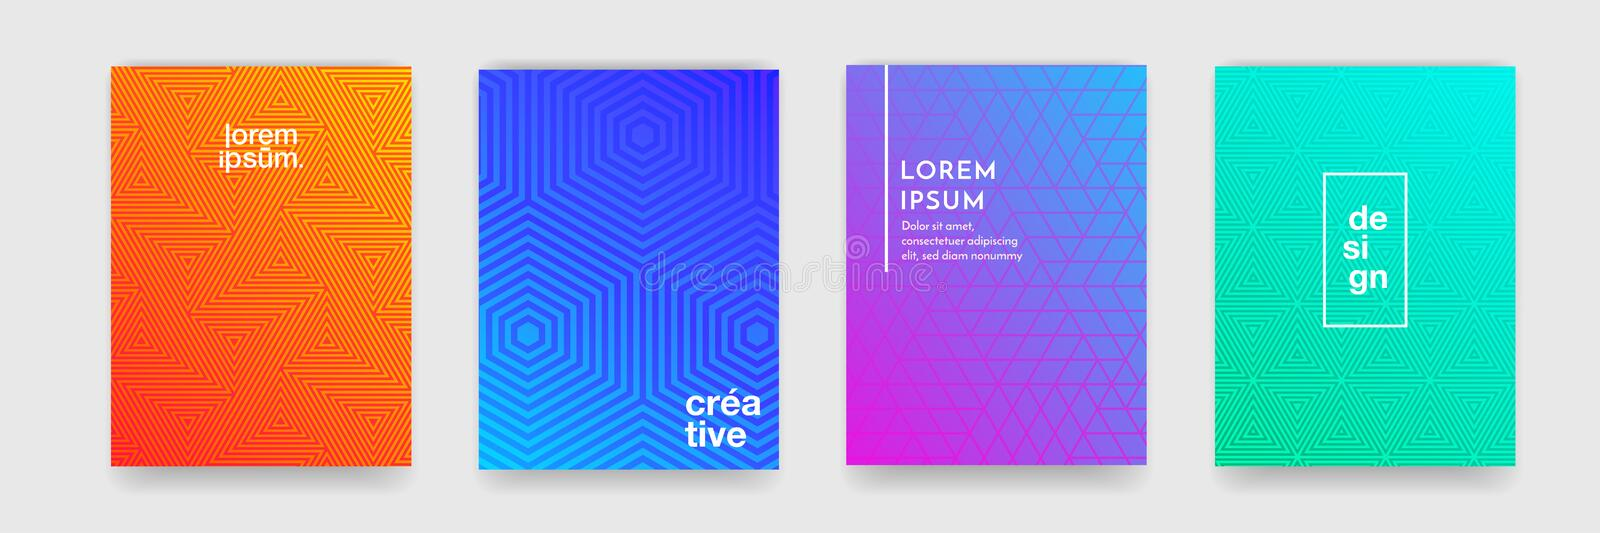 Abstract geometric pattern background with line texture for business brochure cover design poster template. Abstract geometric pattern background with line royalty free illustration